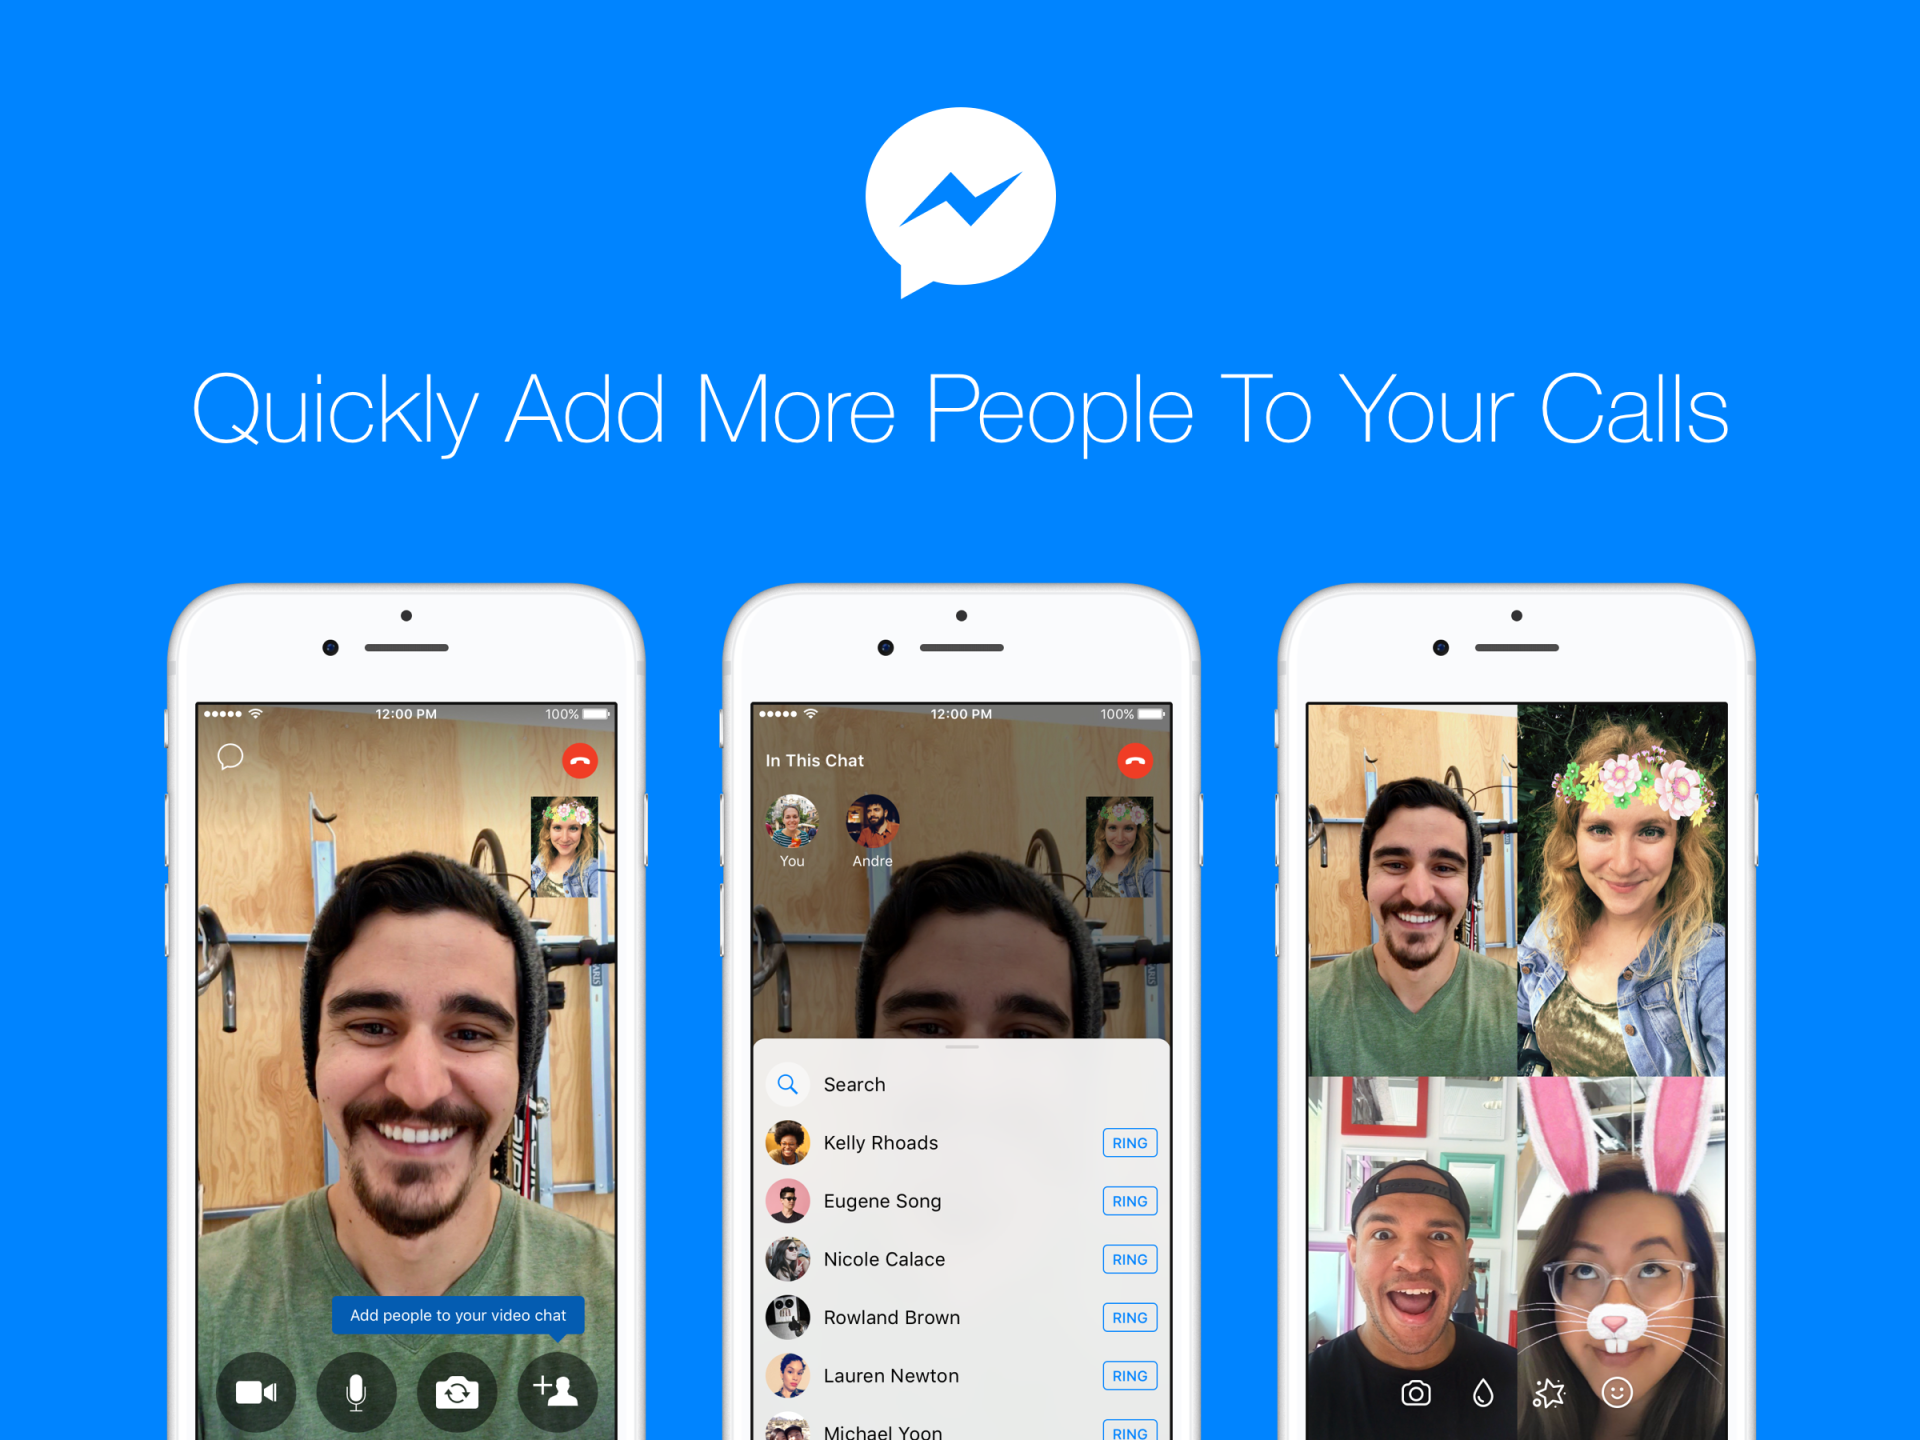 We Just Made It Easier to Add More Friends and Family to Your